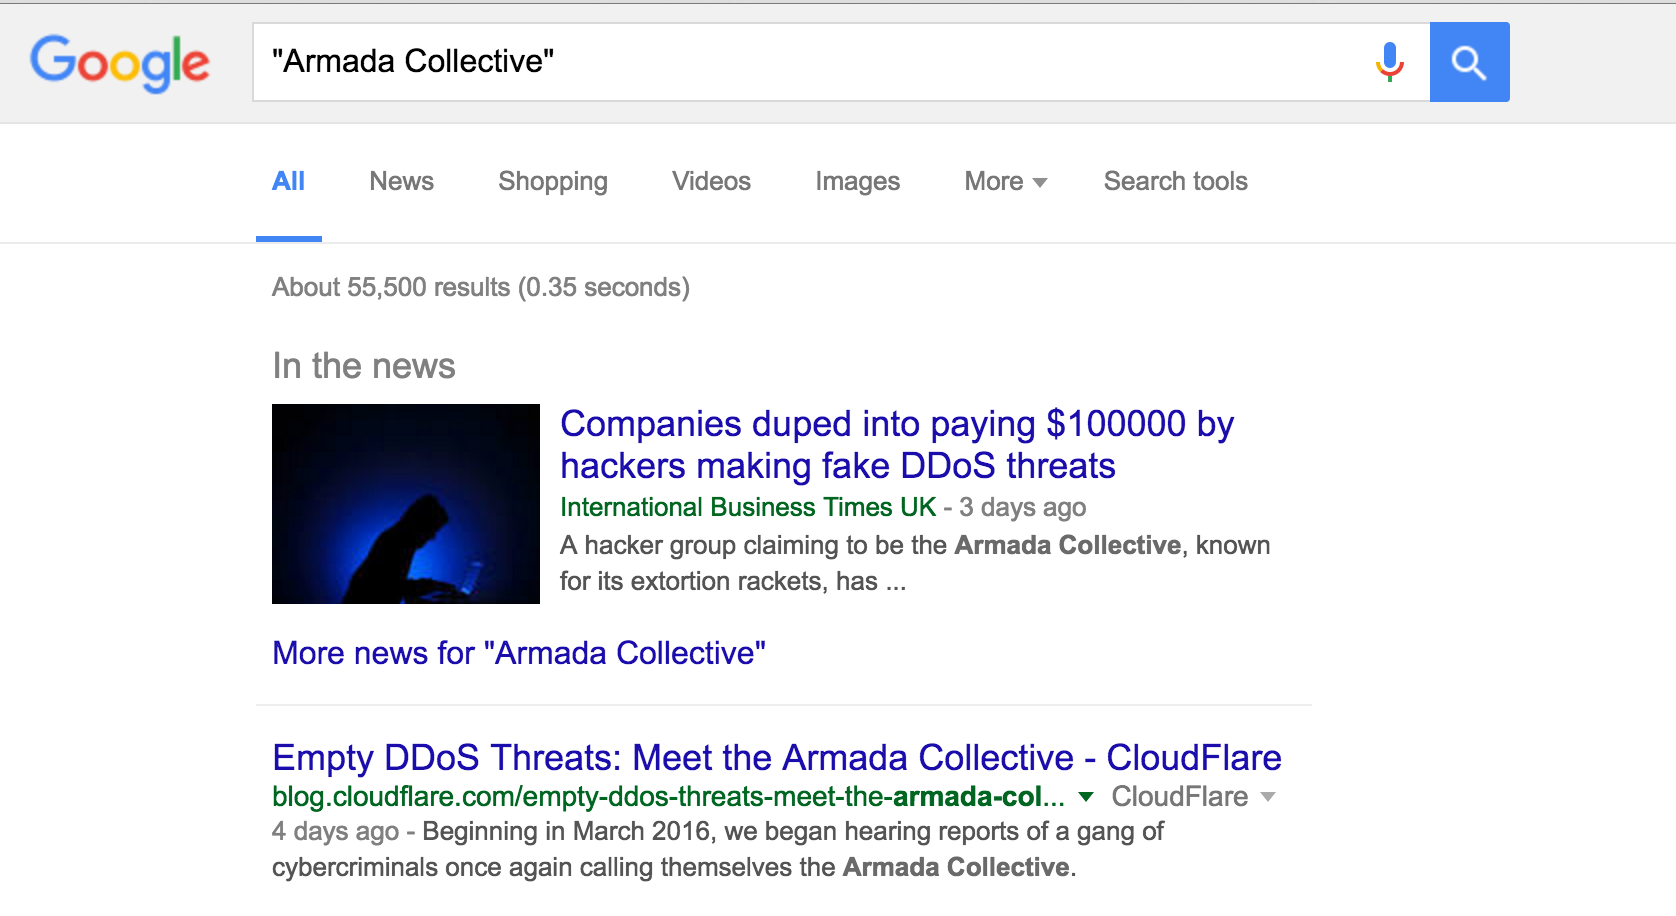 Armada Collective Google Search Results